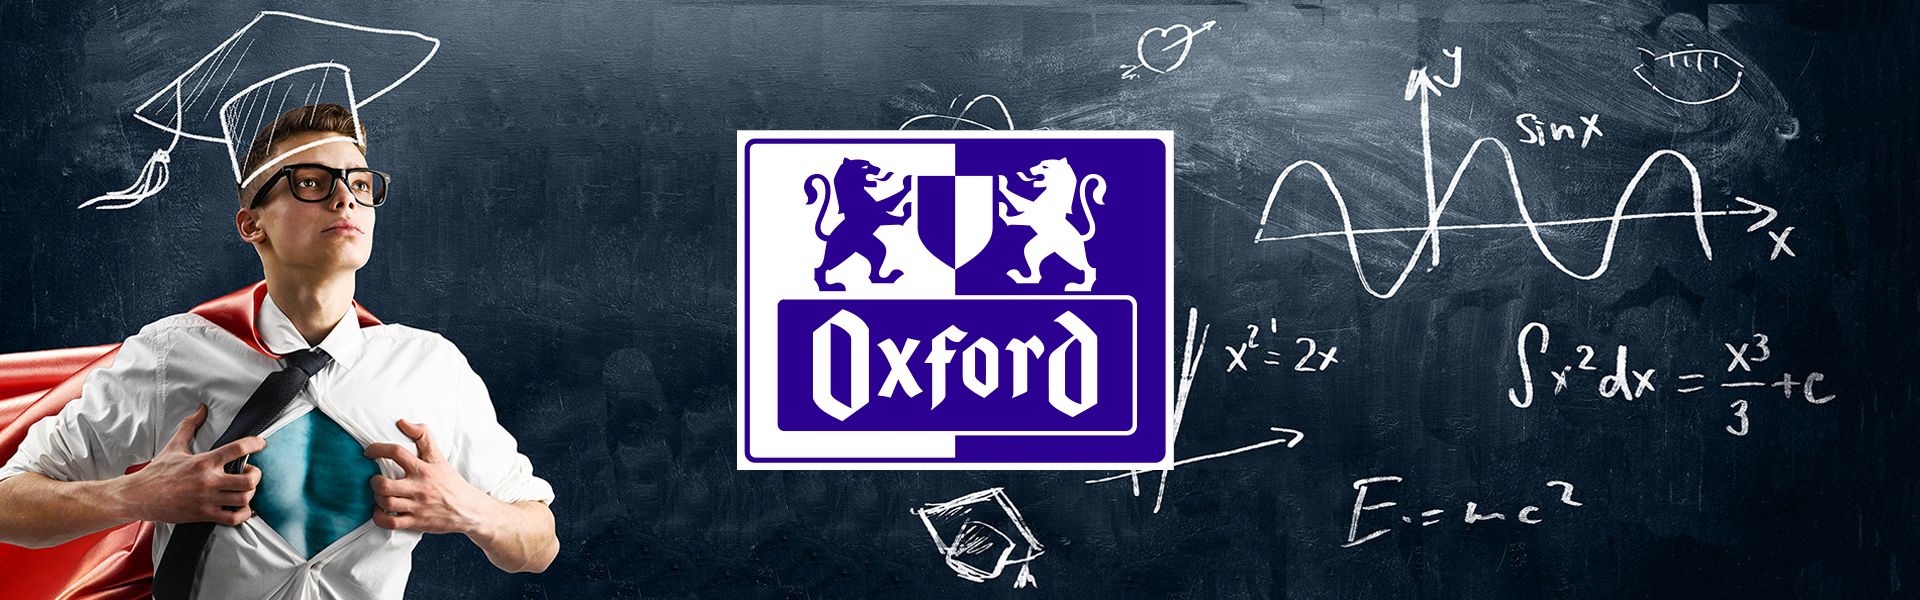 Oxford Brand, Power in your Hands